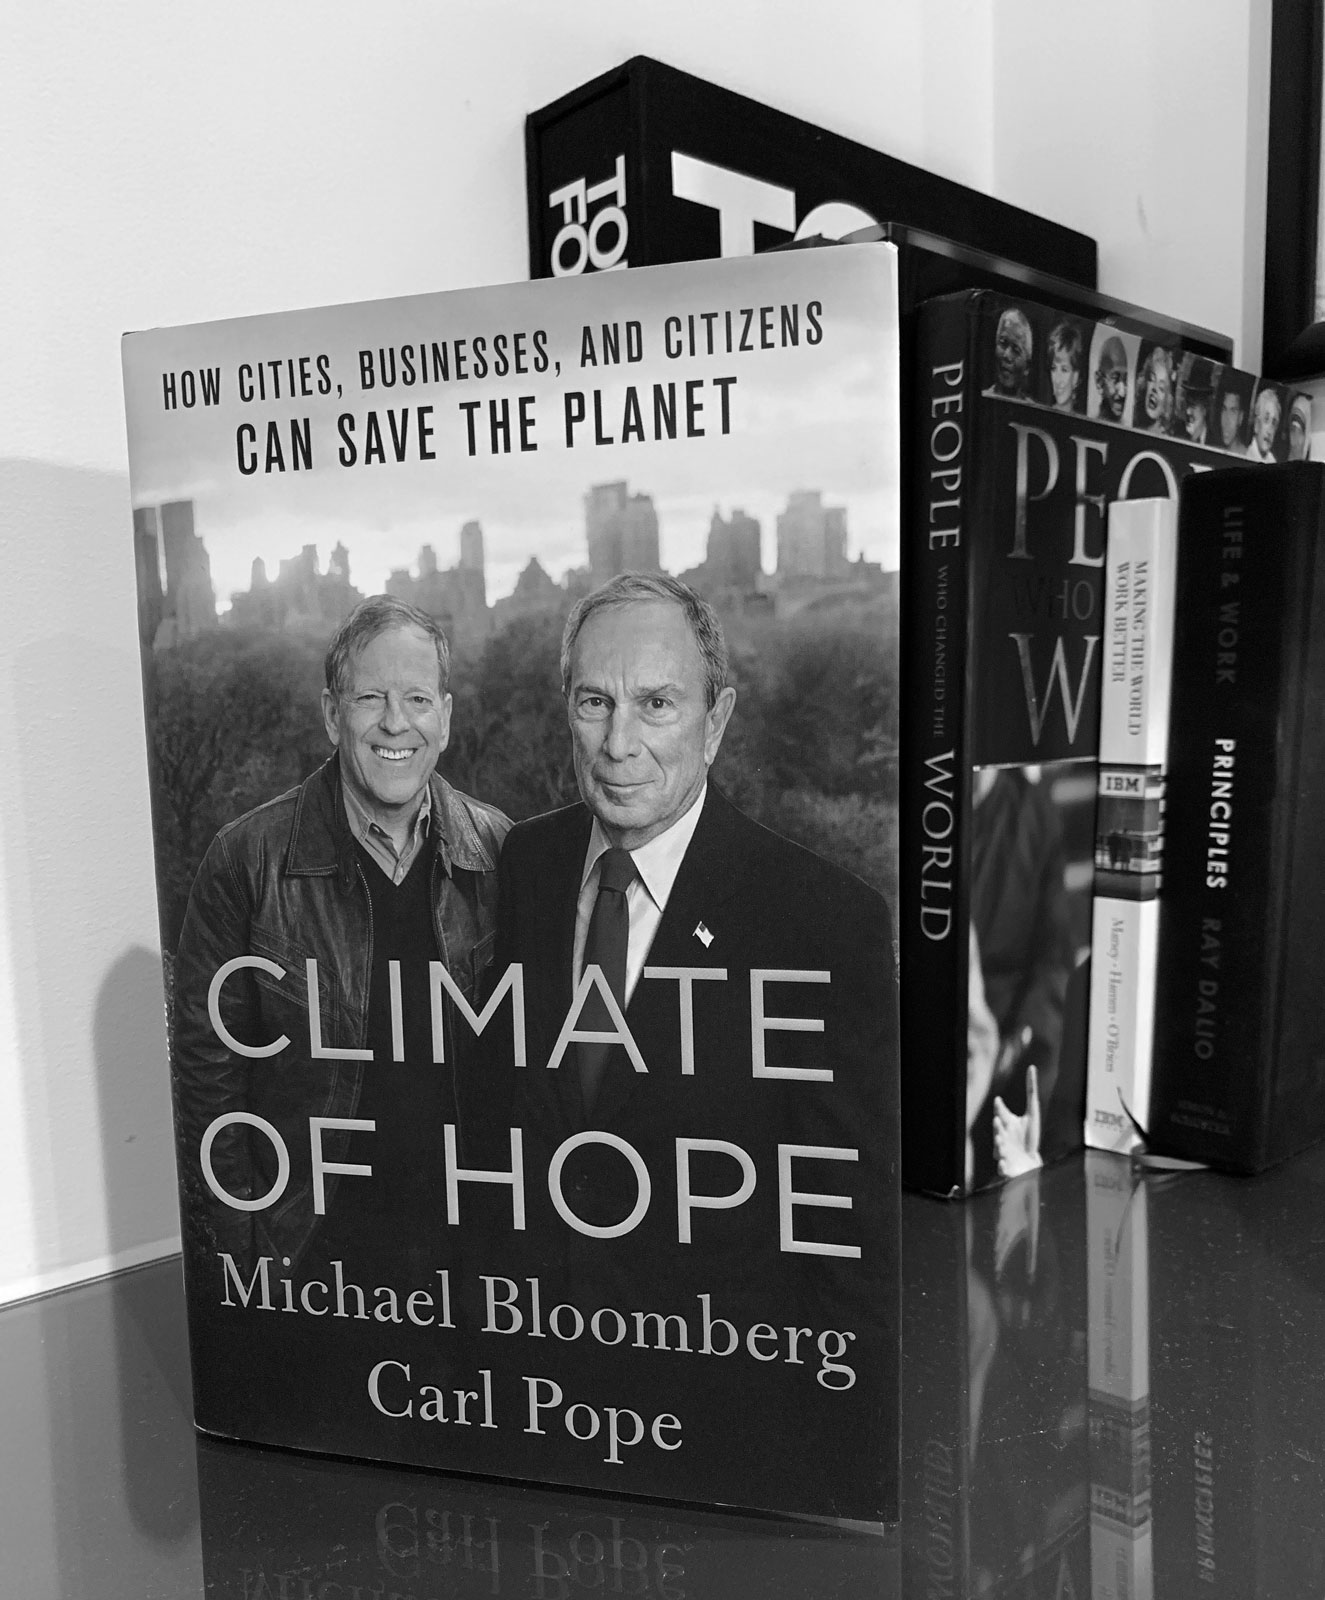 Michael Bloomberg Climate of Hope